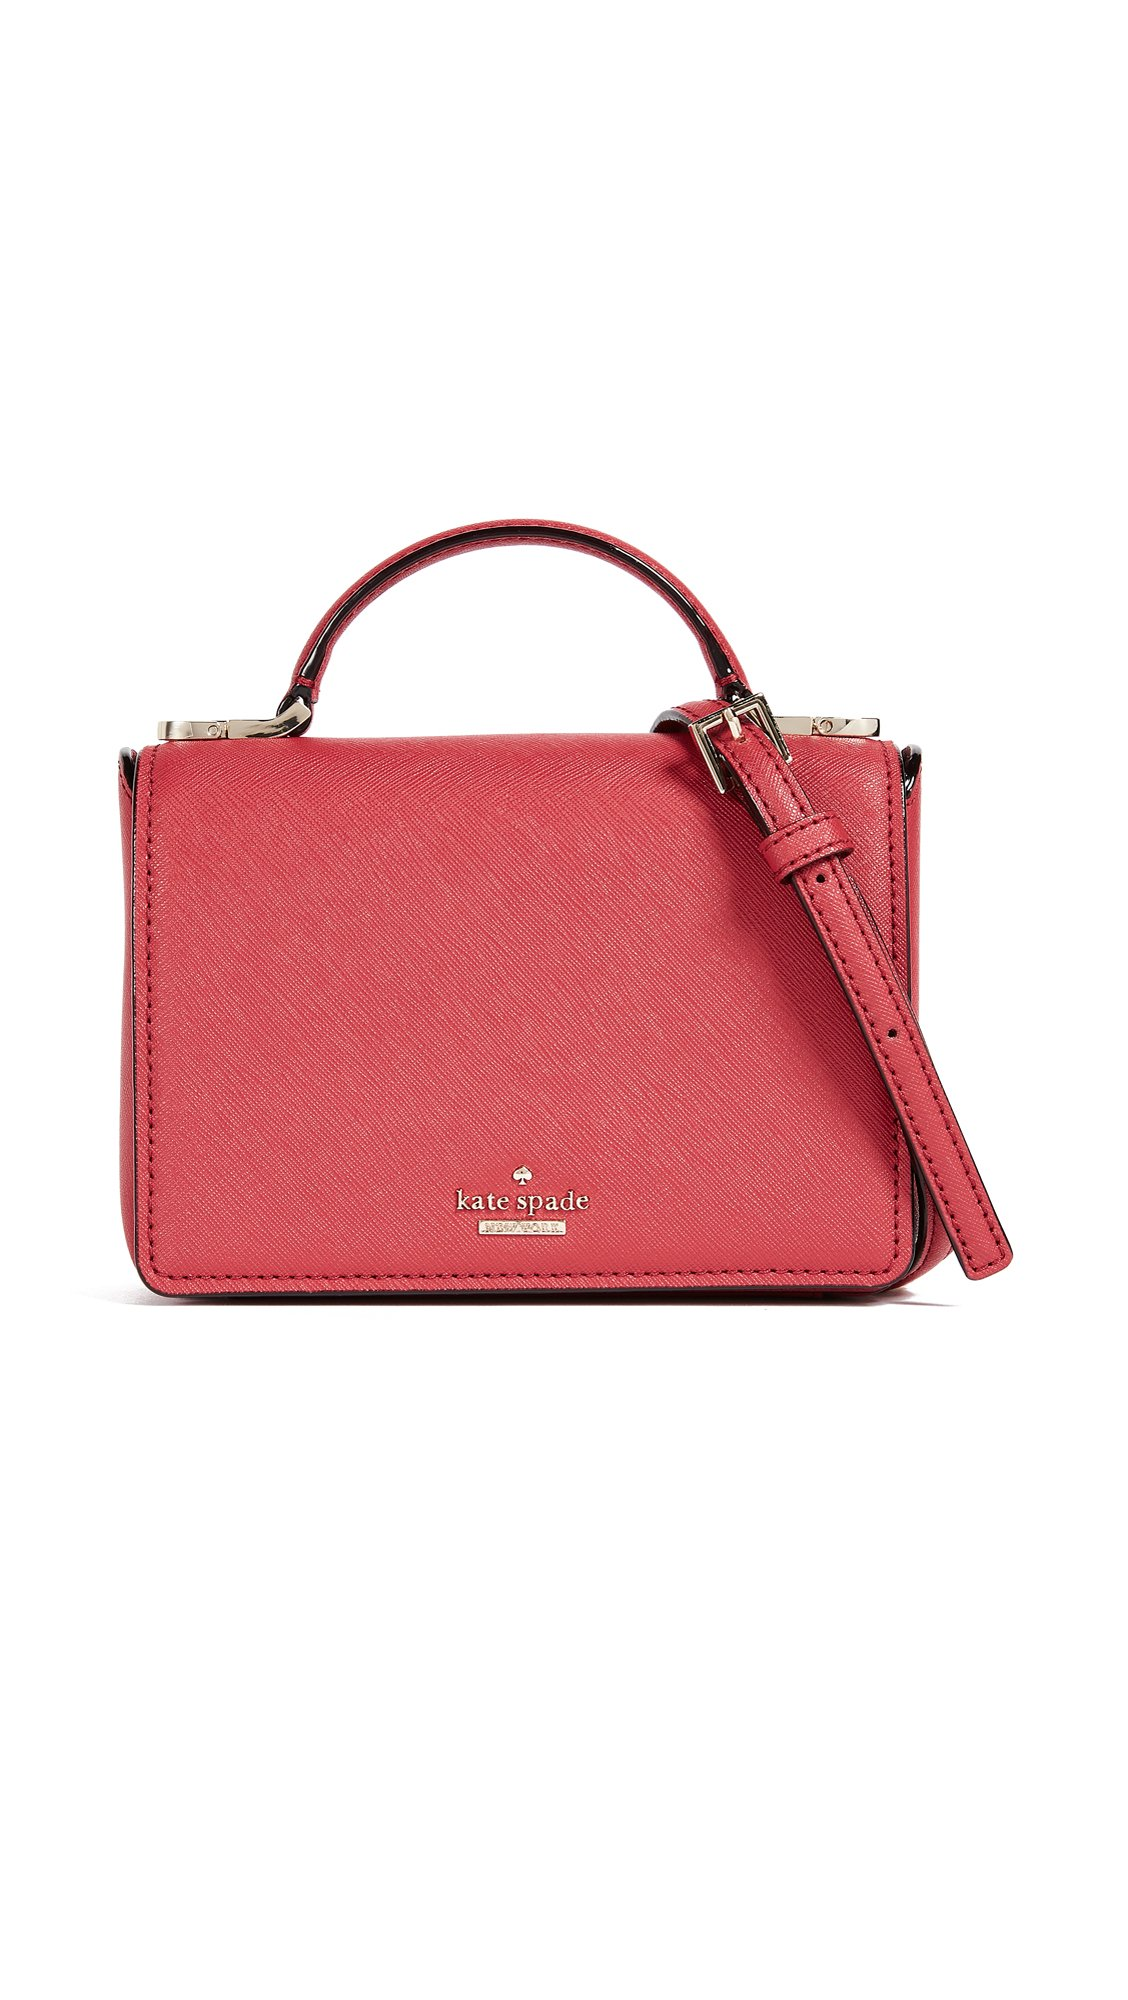 Kate Spade New York Women's Cameron Street Hope Mini Top Handle Bag, Rosso, One Size